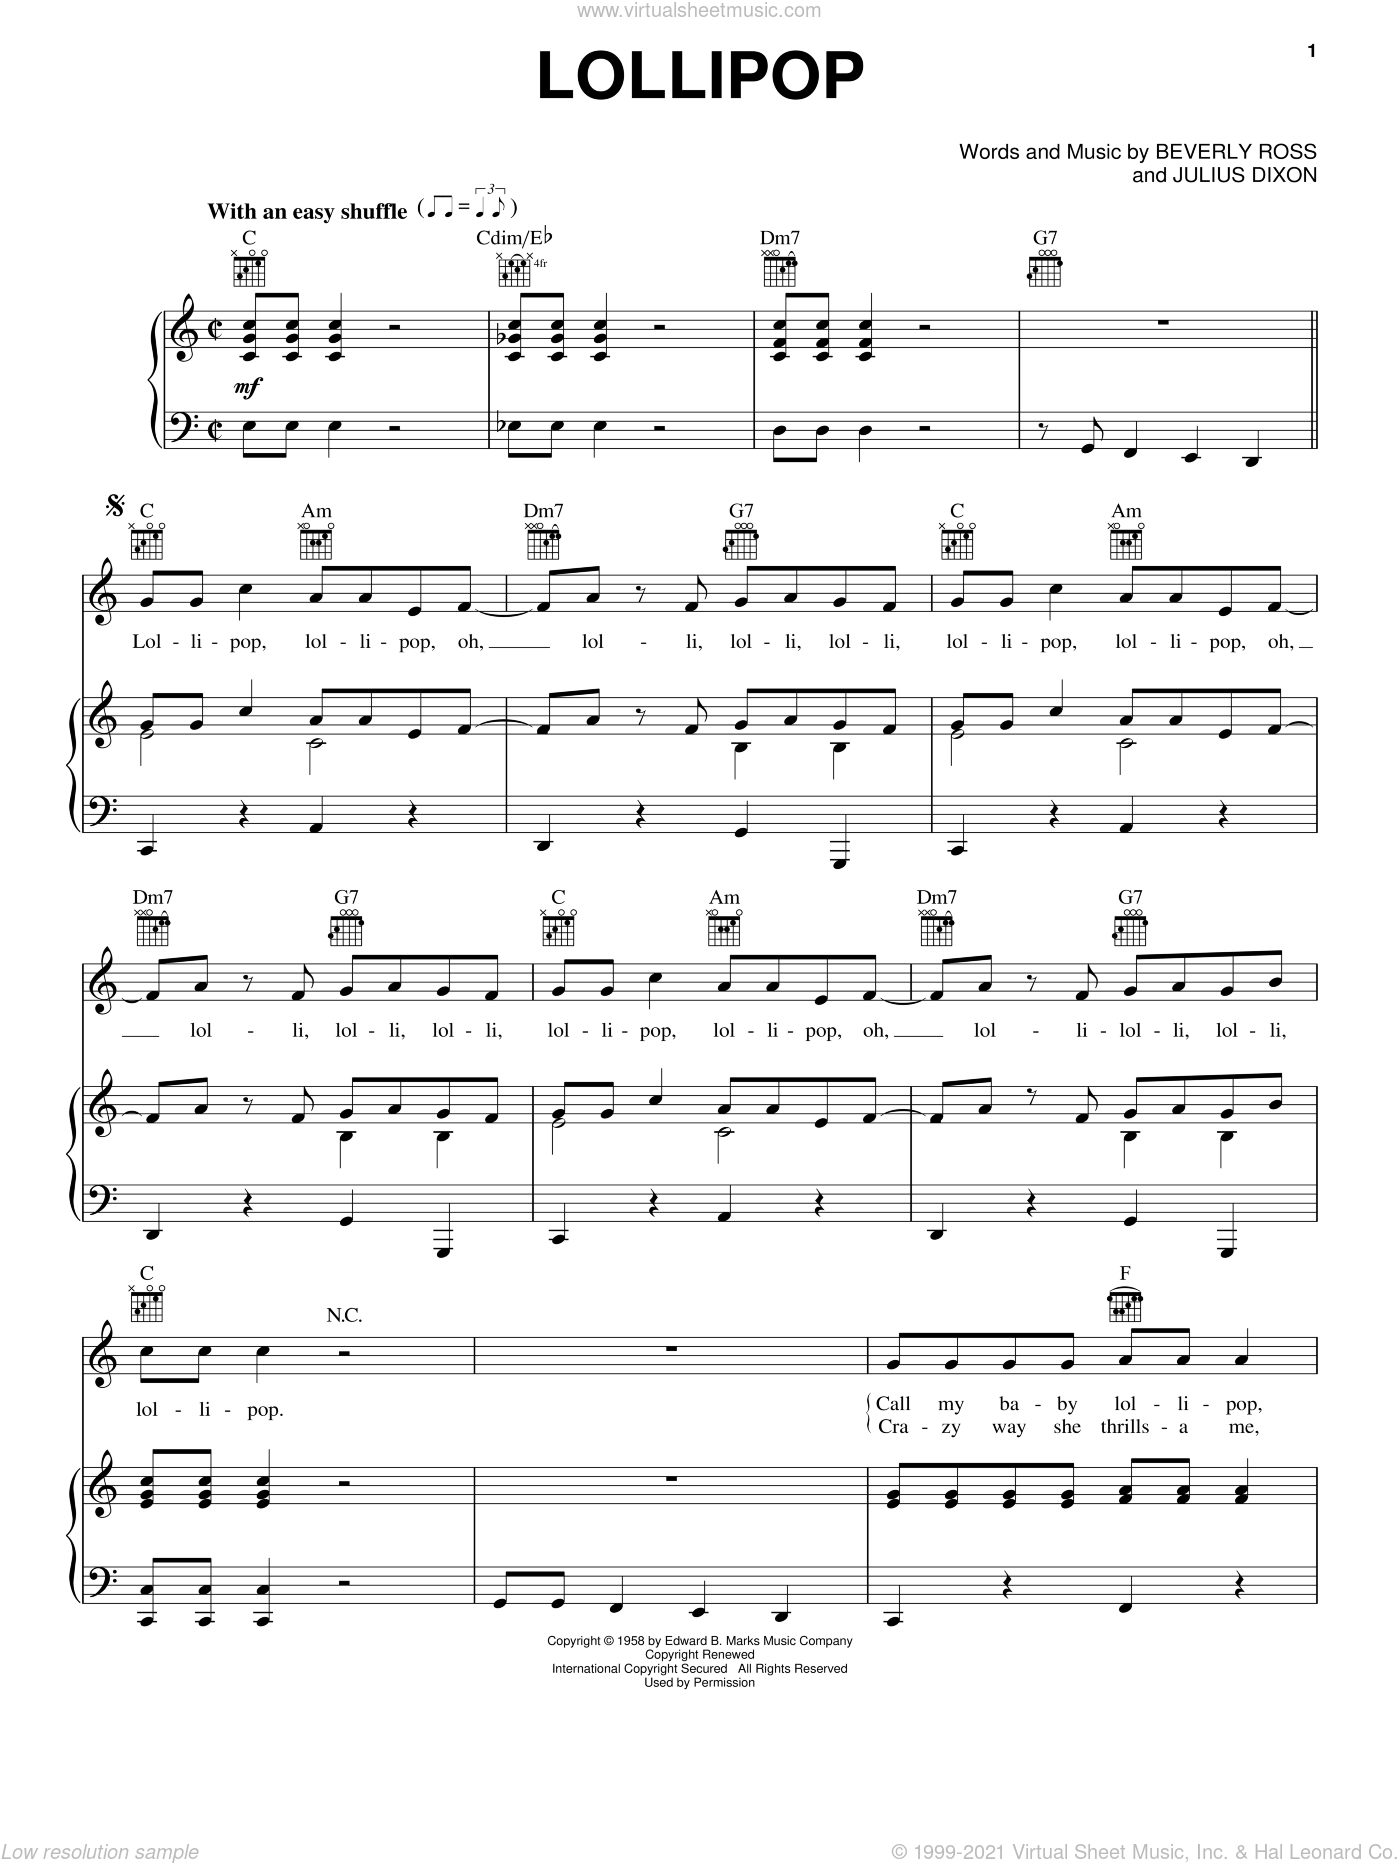 Lollipop sheet music for voice, piano or guitar by The Chordettes, Beverly Ross and Julius Dixon, intermediate skill level